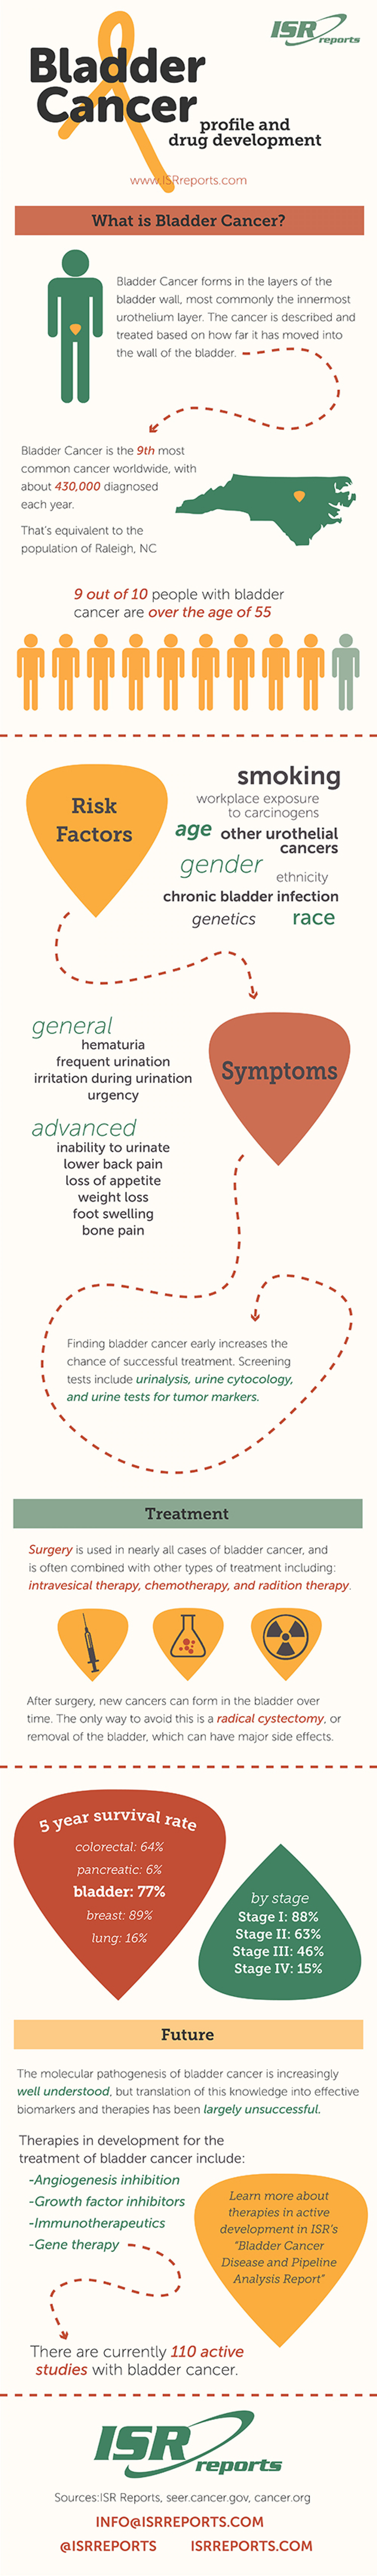 Bladder Cancer: Profile and Drug Development Infographic